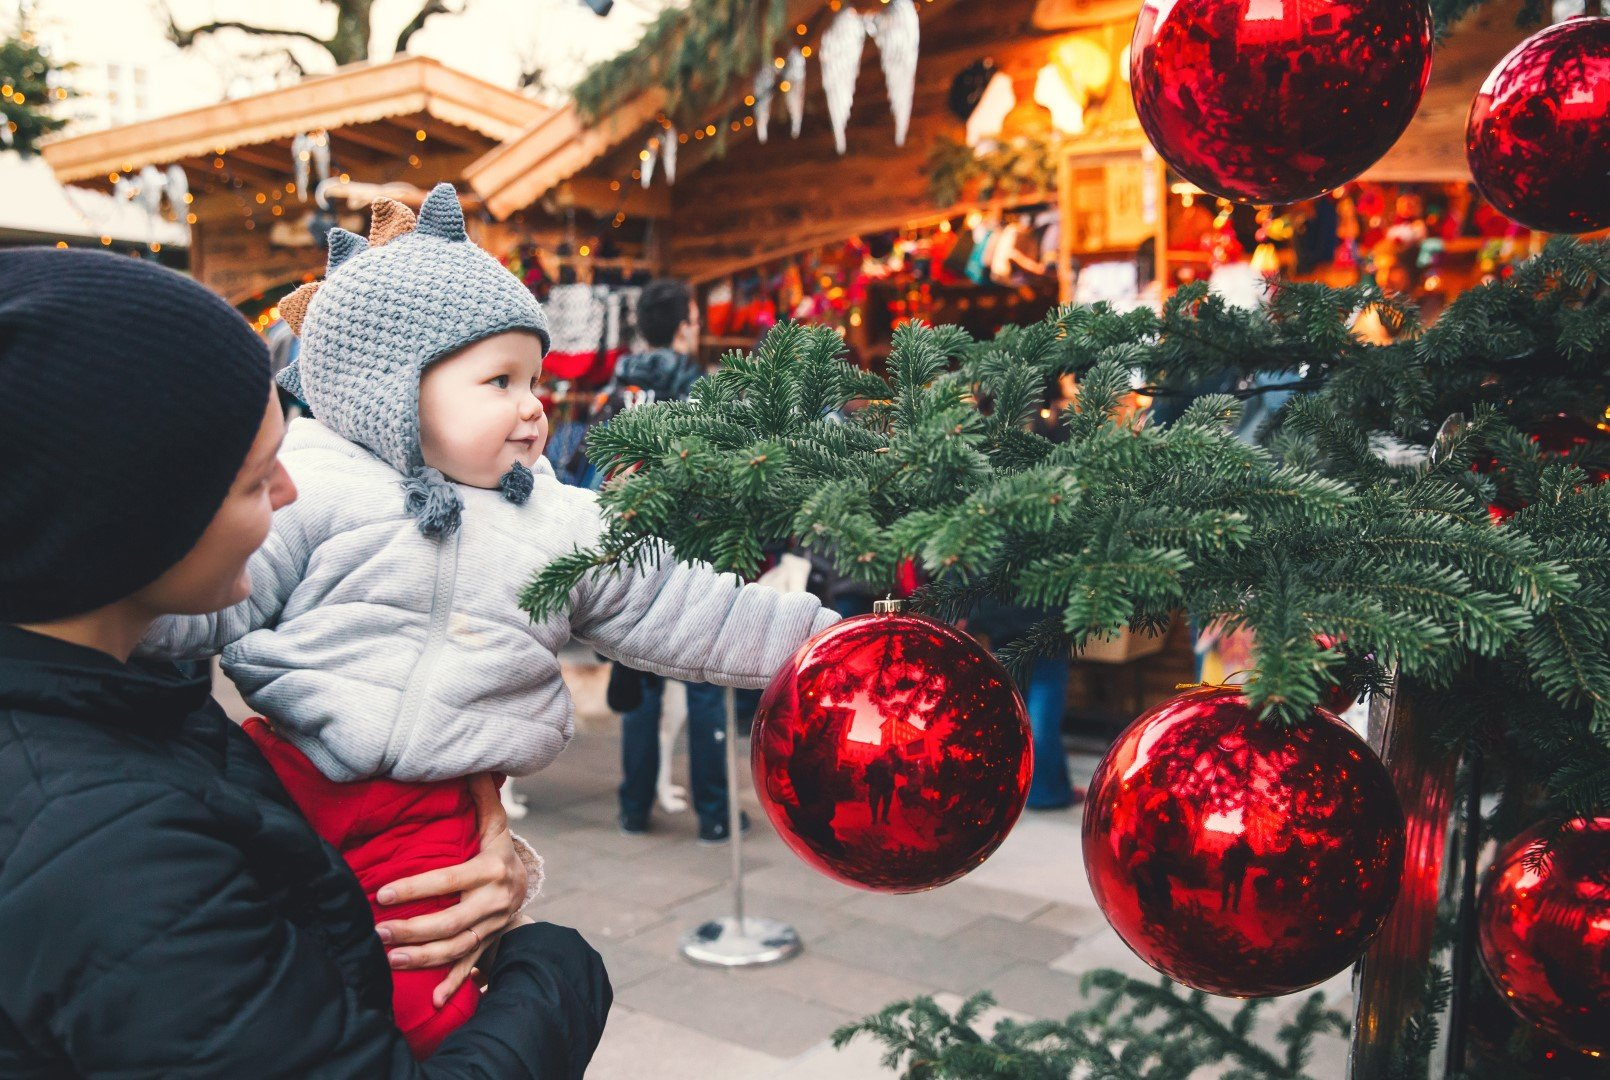 Discover the birth place of Wolfgang Amadeus Mozart, enjoy the winter wonderland in the Lake Region and visit Austria's most charming Christmas market. Availability: 23 November - 23 December 2019